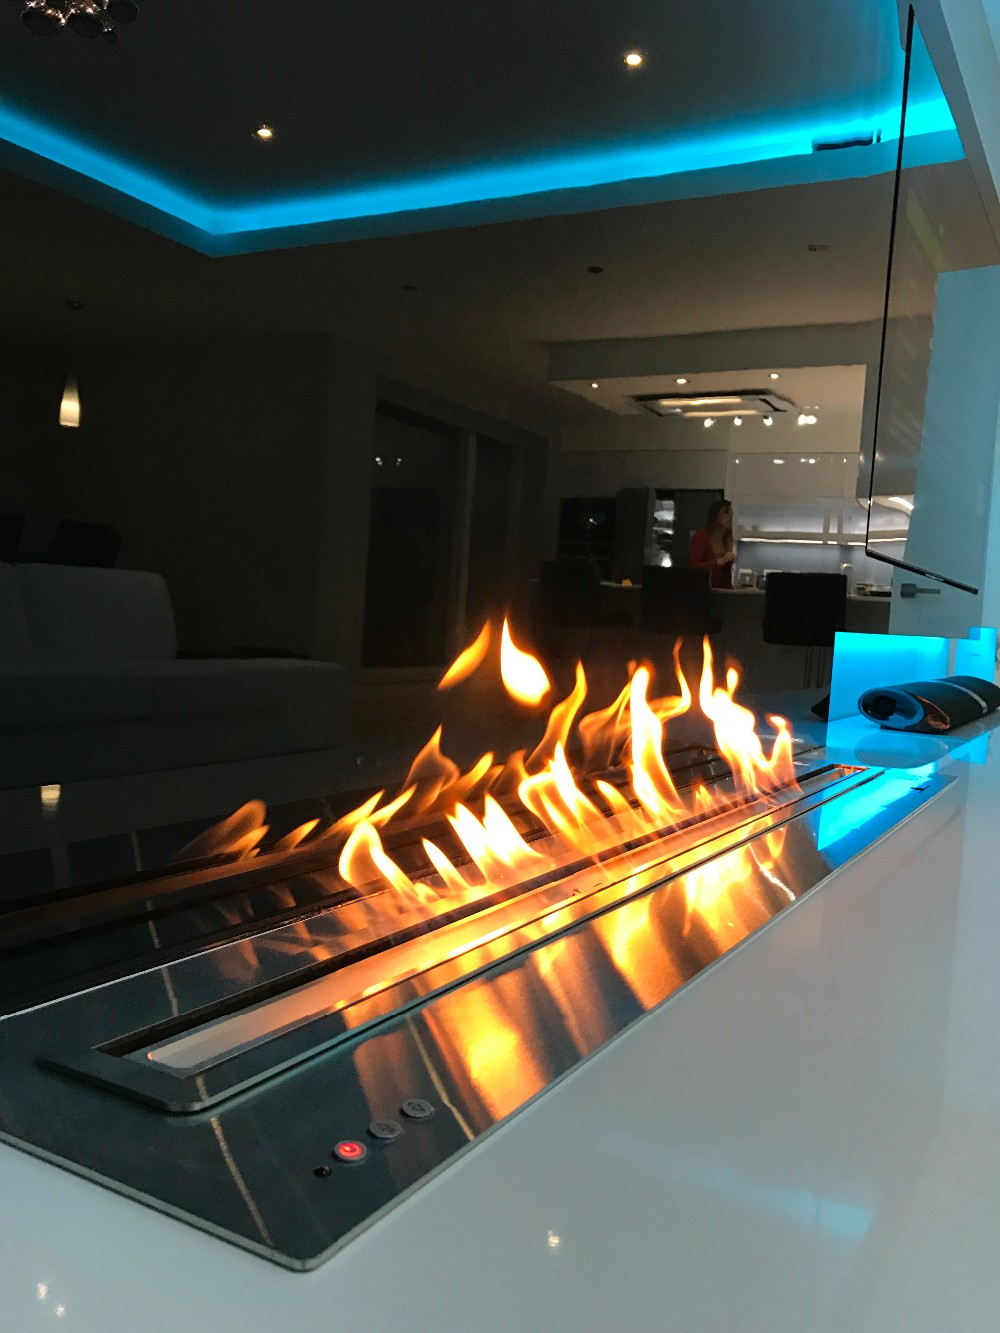 72 Inch Black Remote Control  Intelligent Wifi Smart Fireplace Electric Indoor